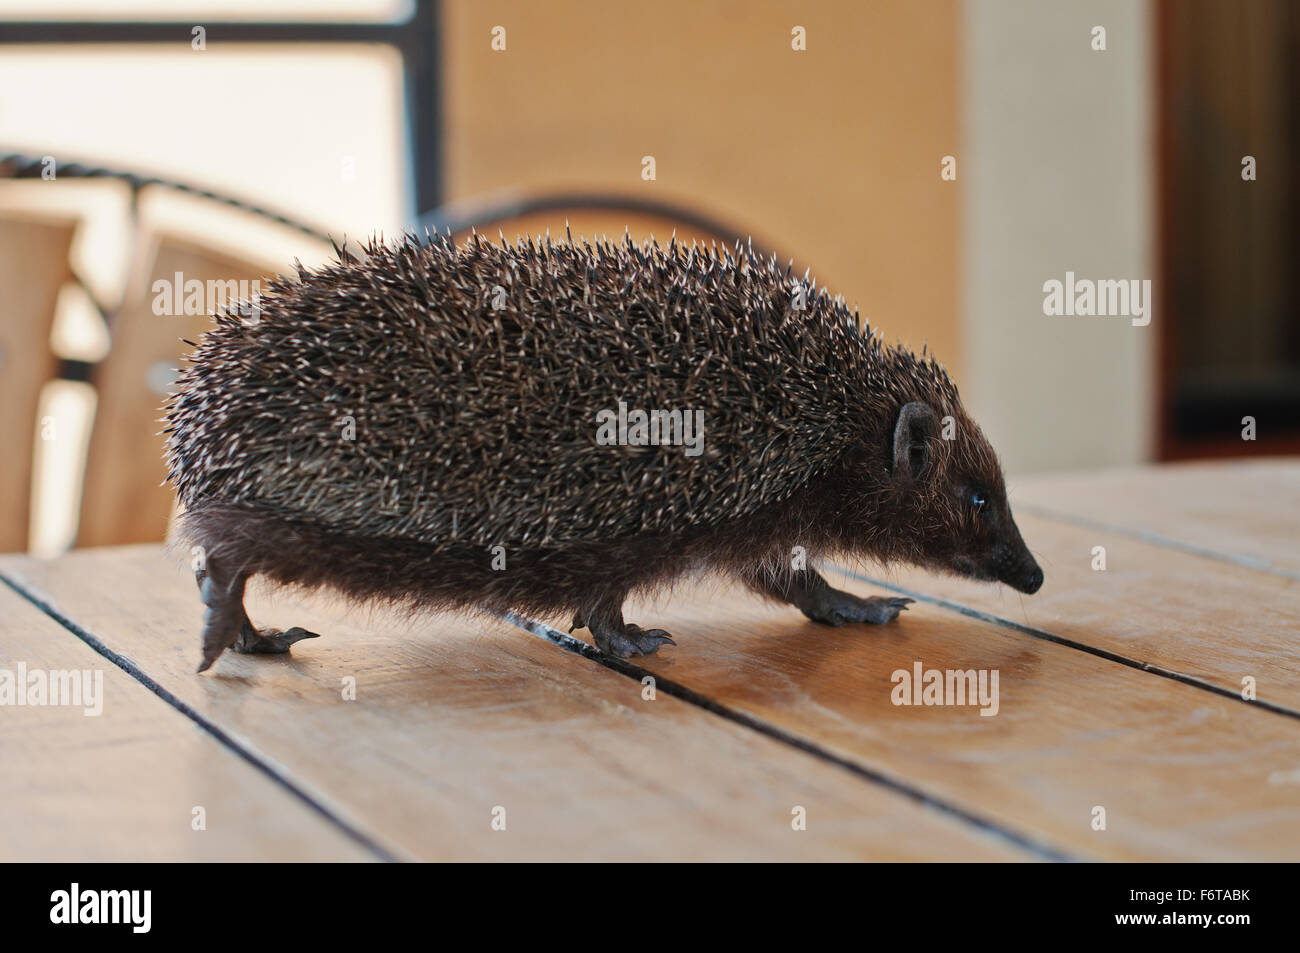 hedgehog on the wooden table - Stock Image